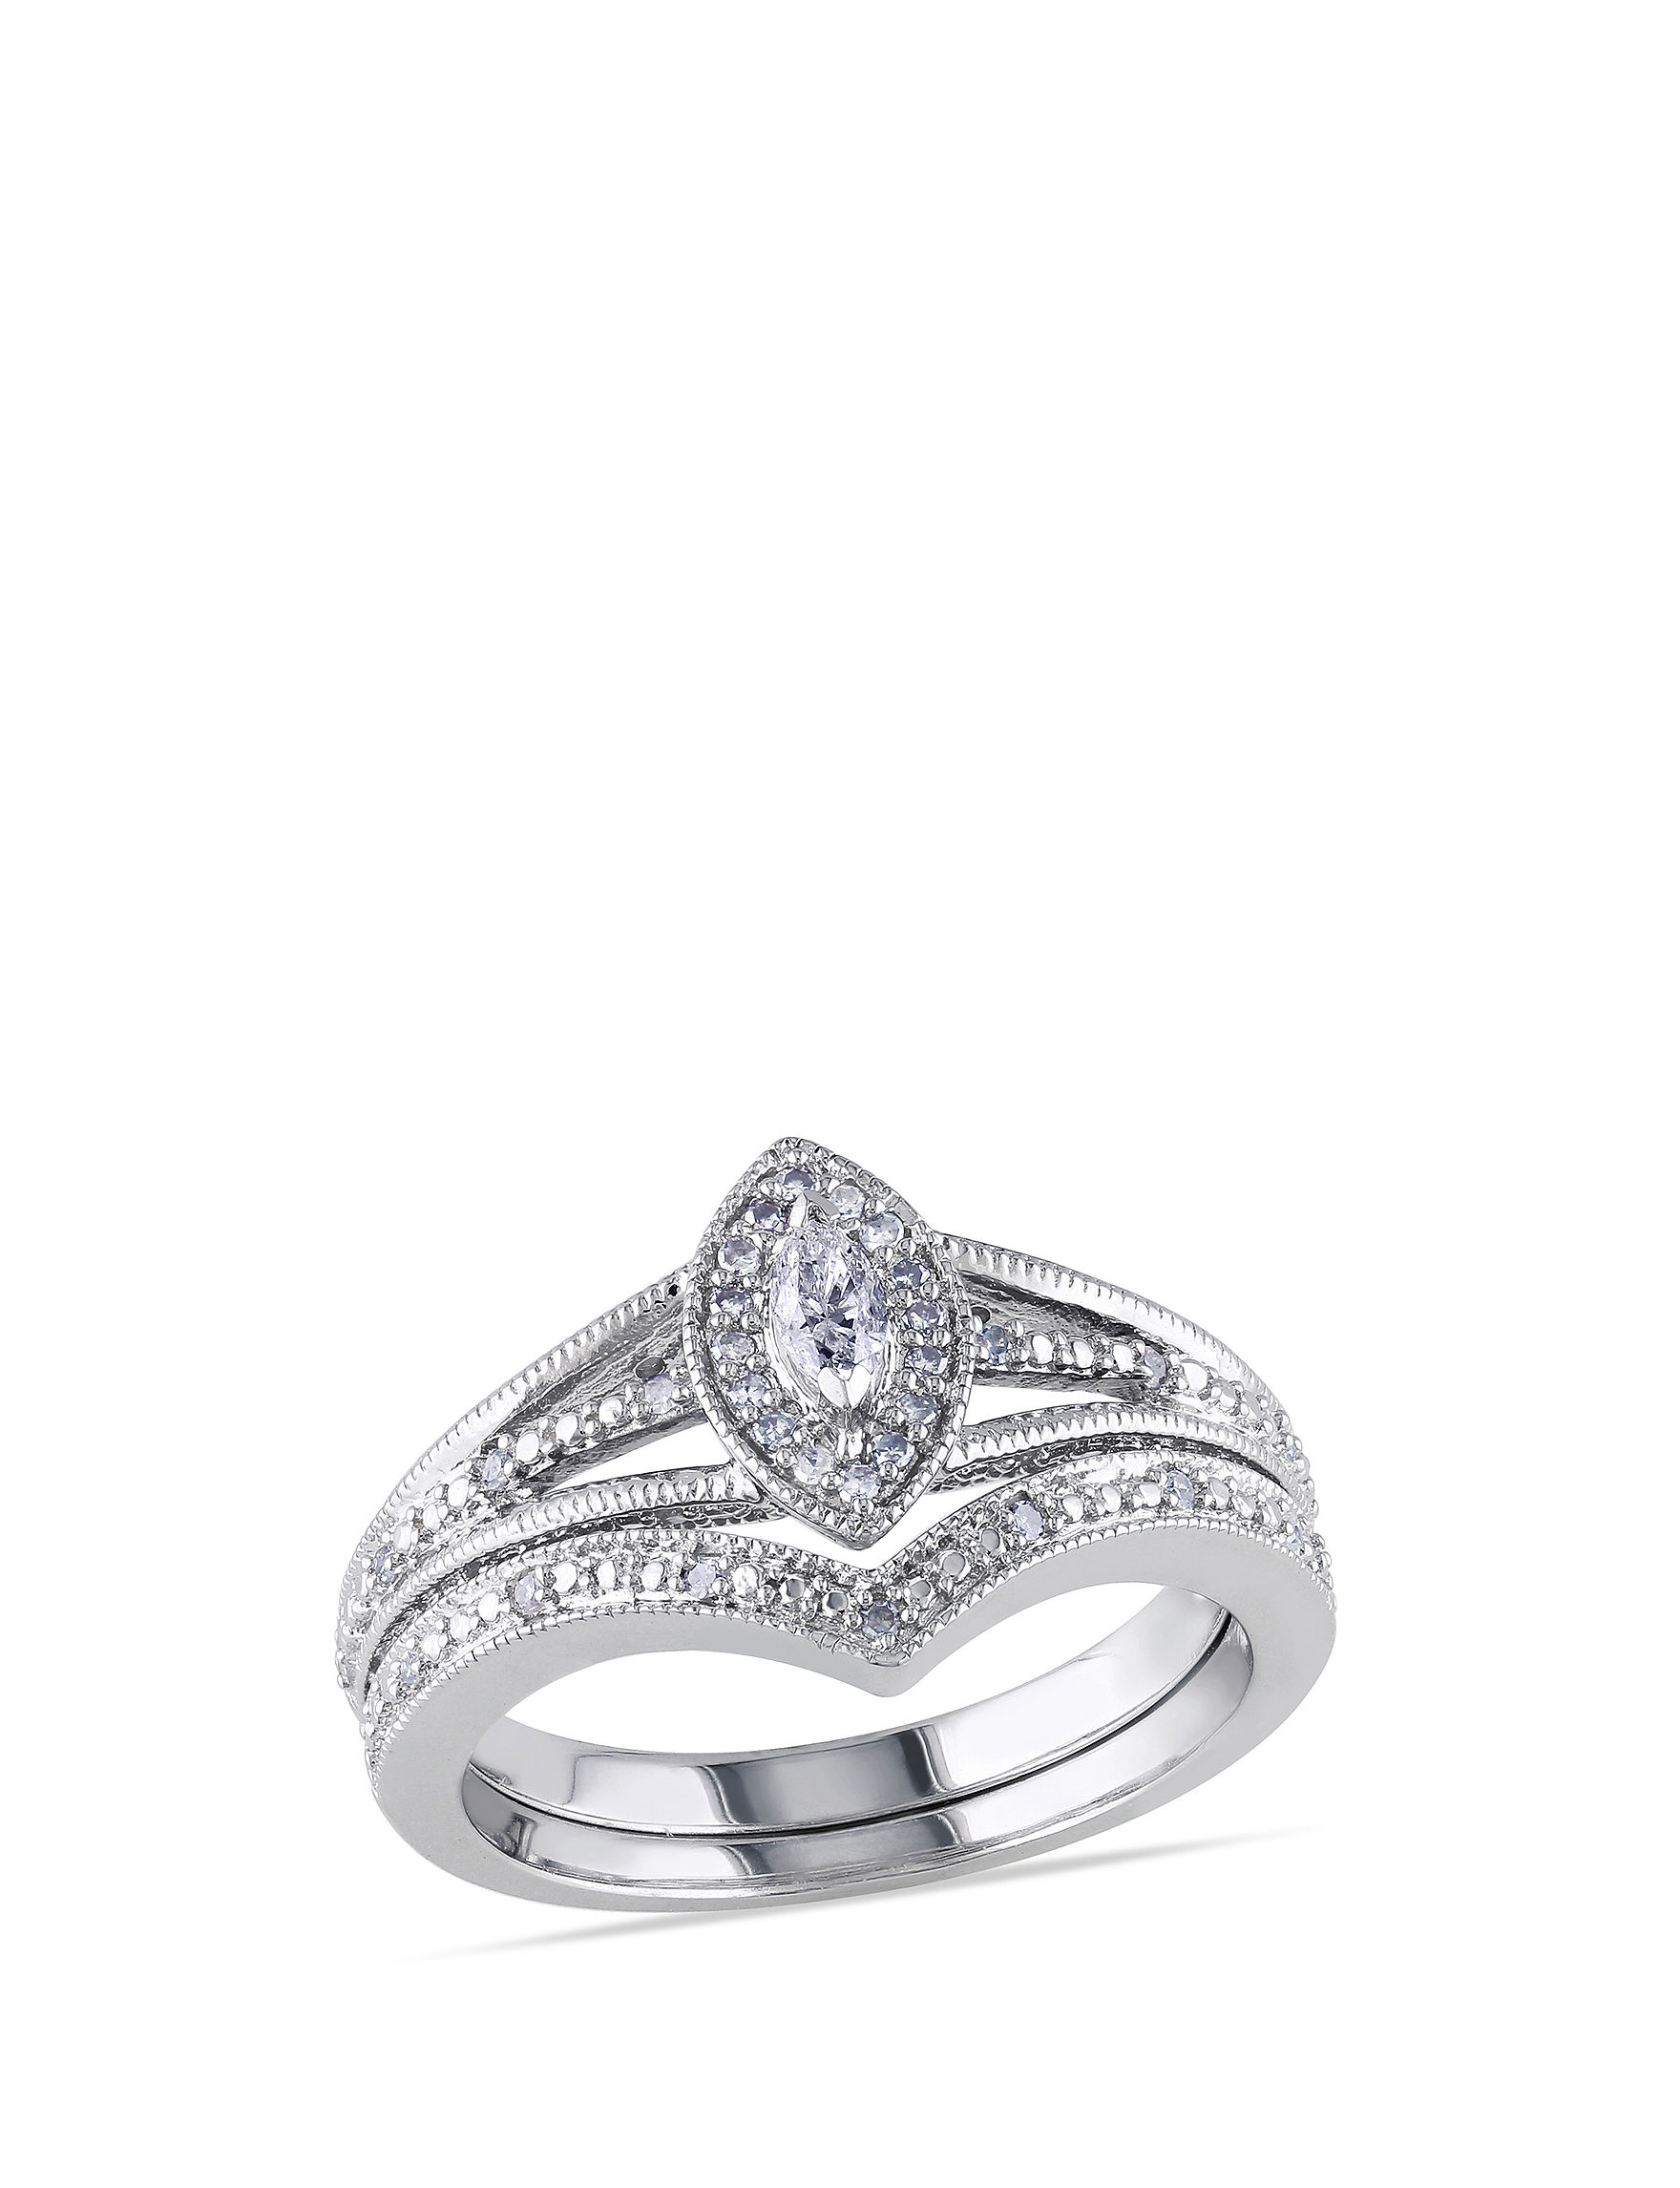 Concerto Diamonds Silver Rings Fine Jewelry